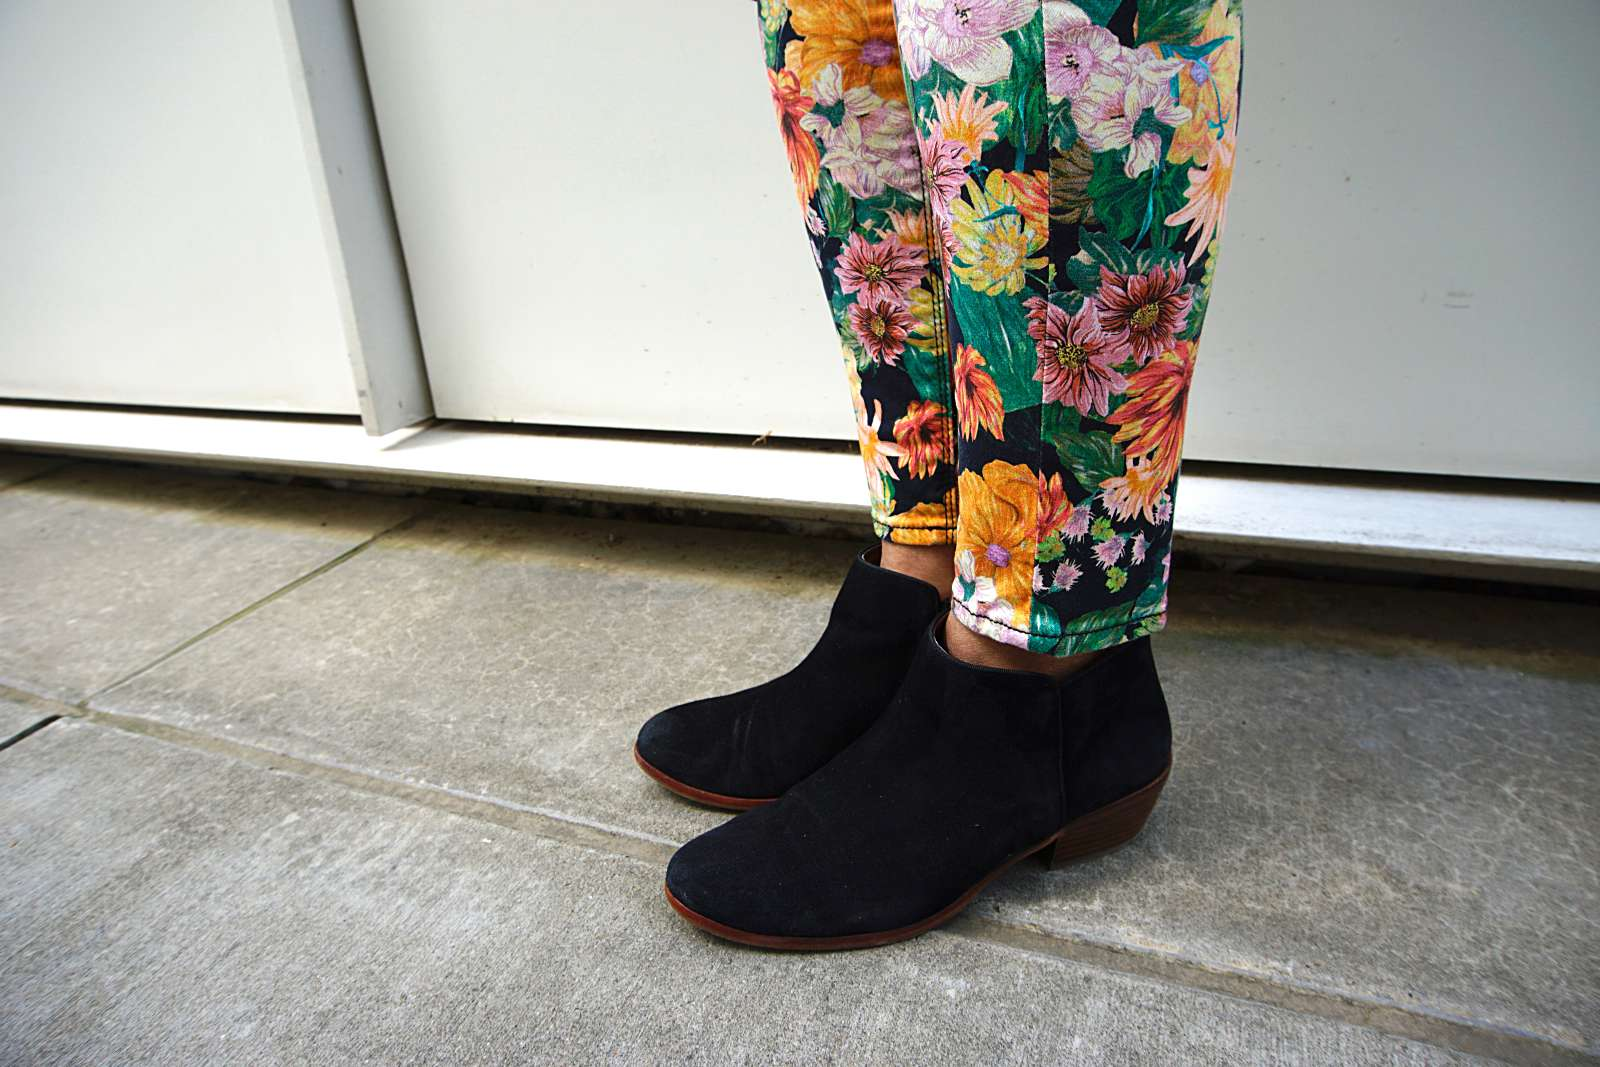 What to wear for effortless cool - it's easier than you think (in fact effortless). | My Syle |Seven For All Mankind | Sam Edelman booties - Sherrelle